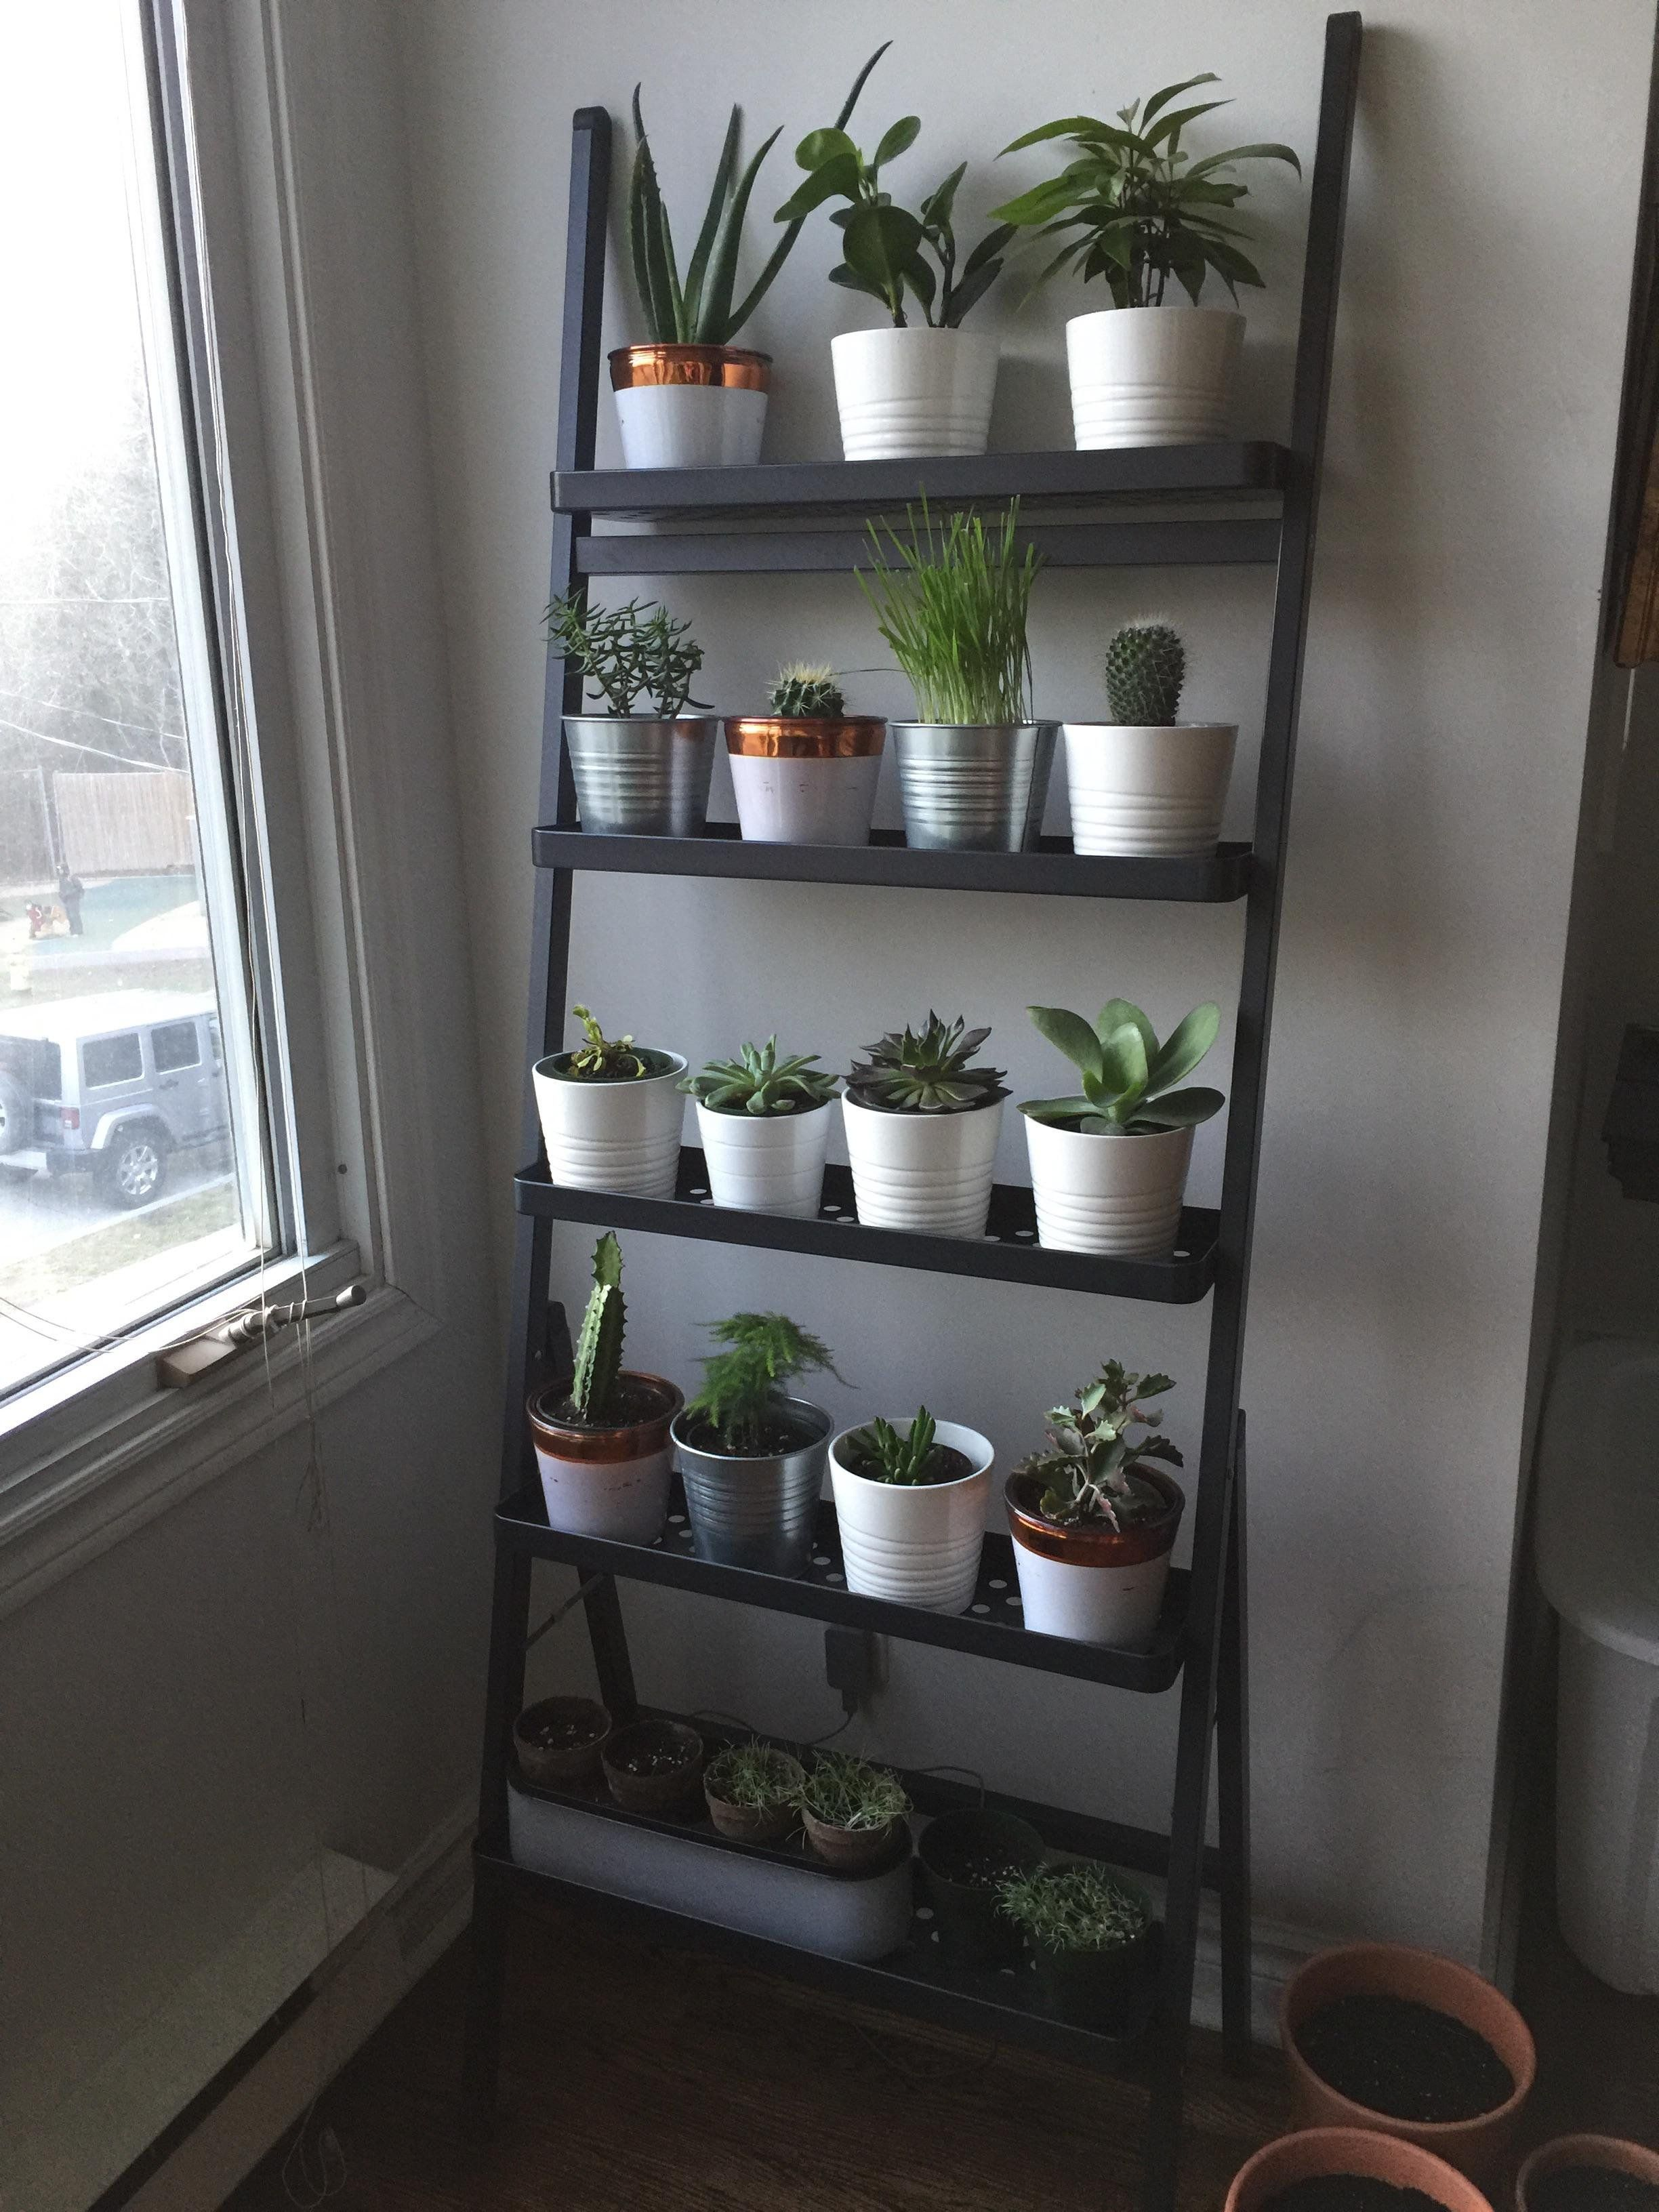 For organizing and herb garden in the kitchen 9QR